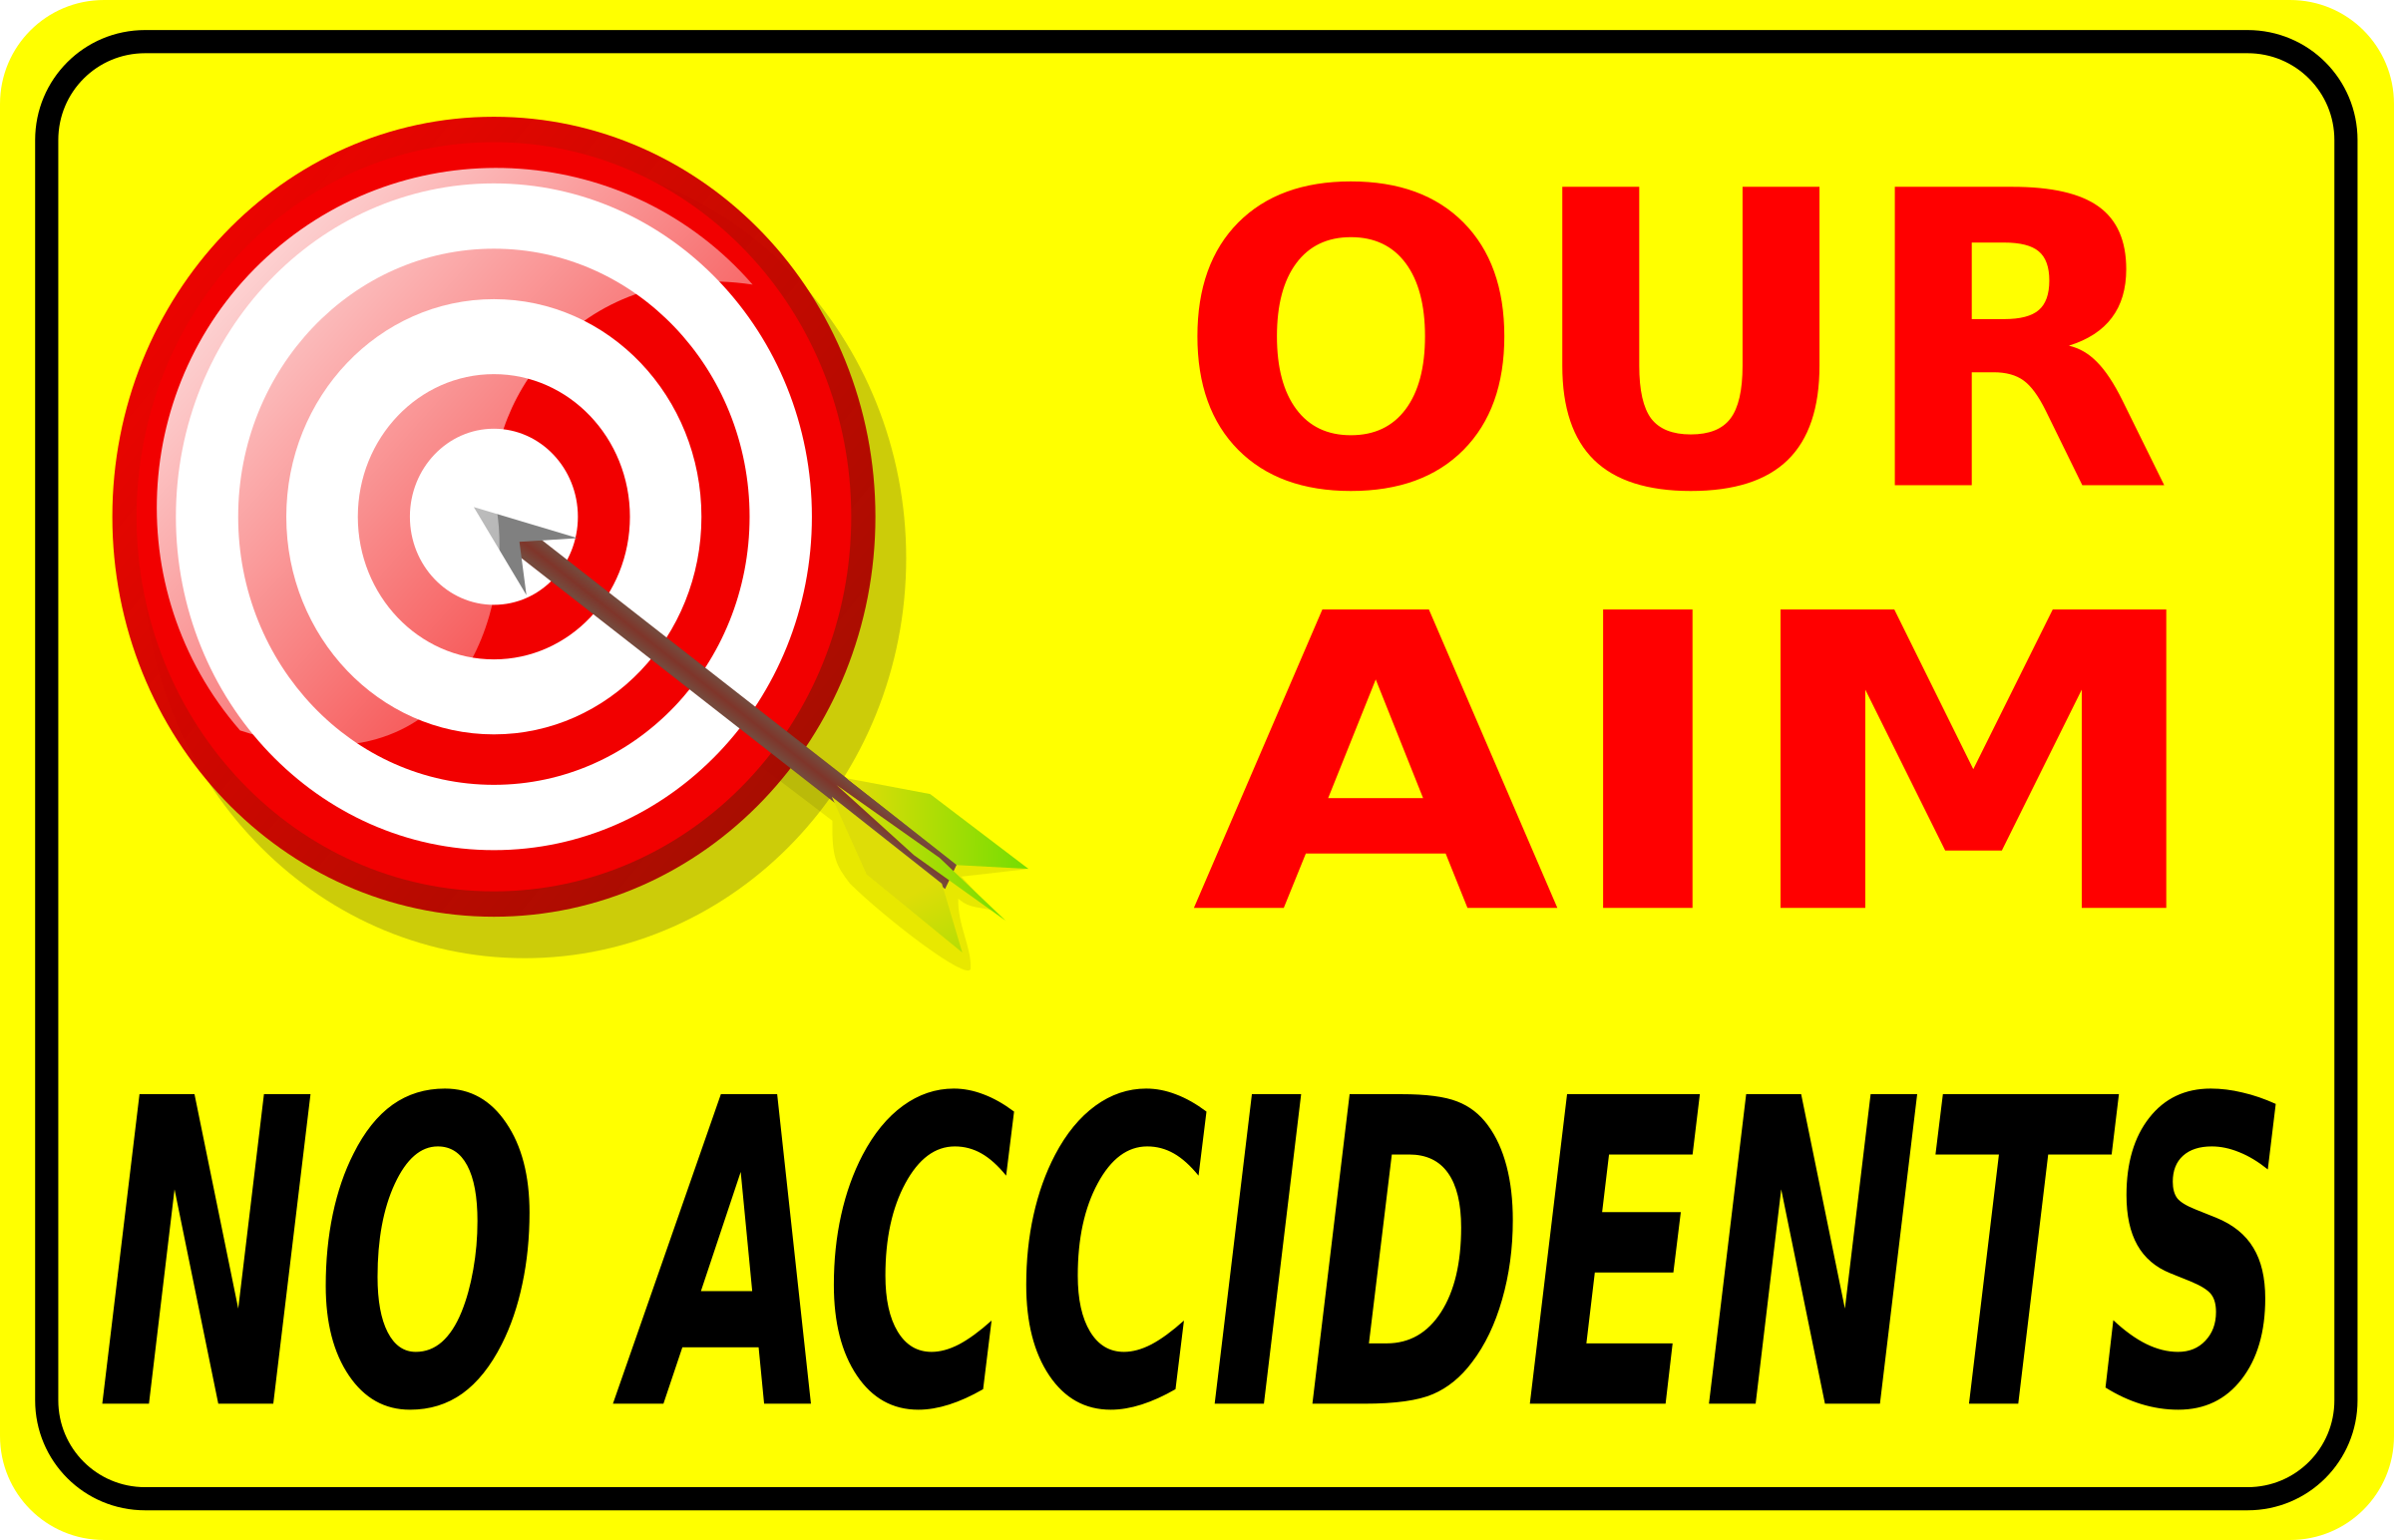 Our aim no accidents by Iyo